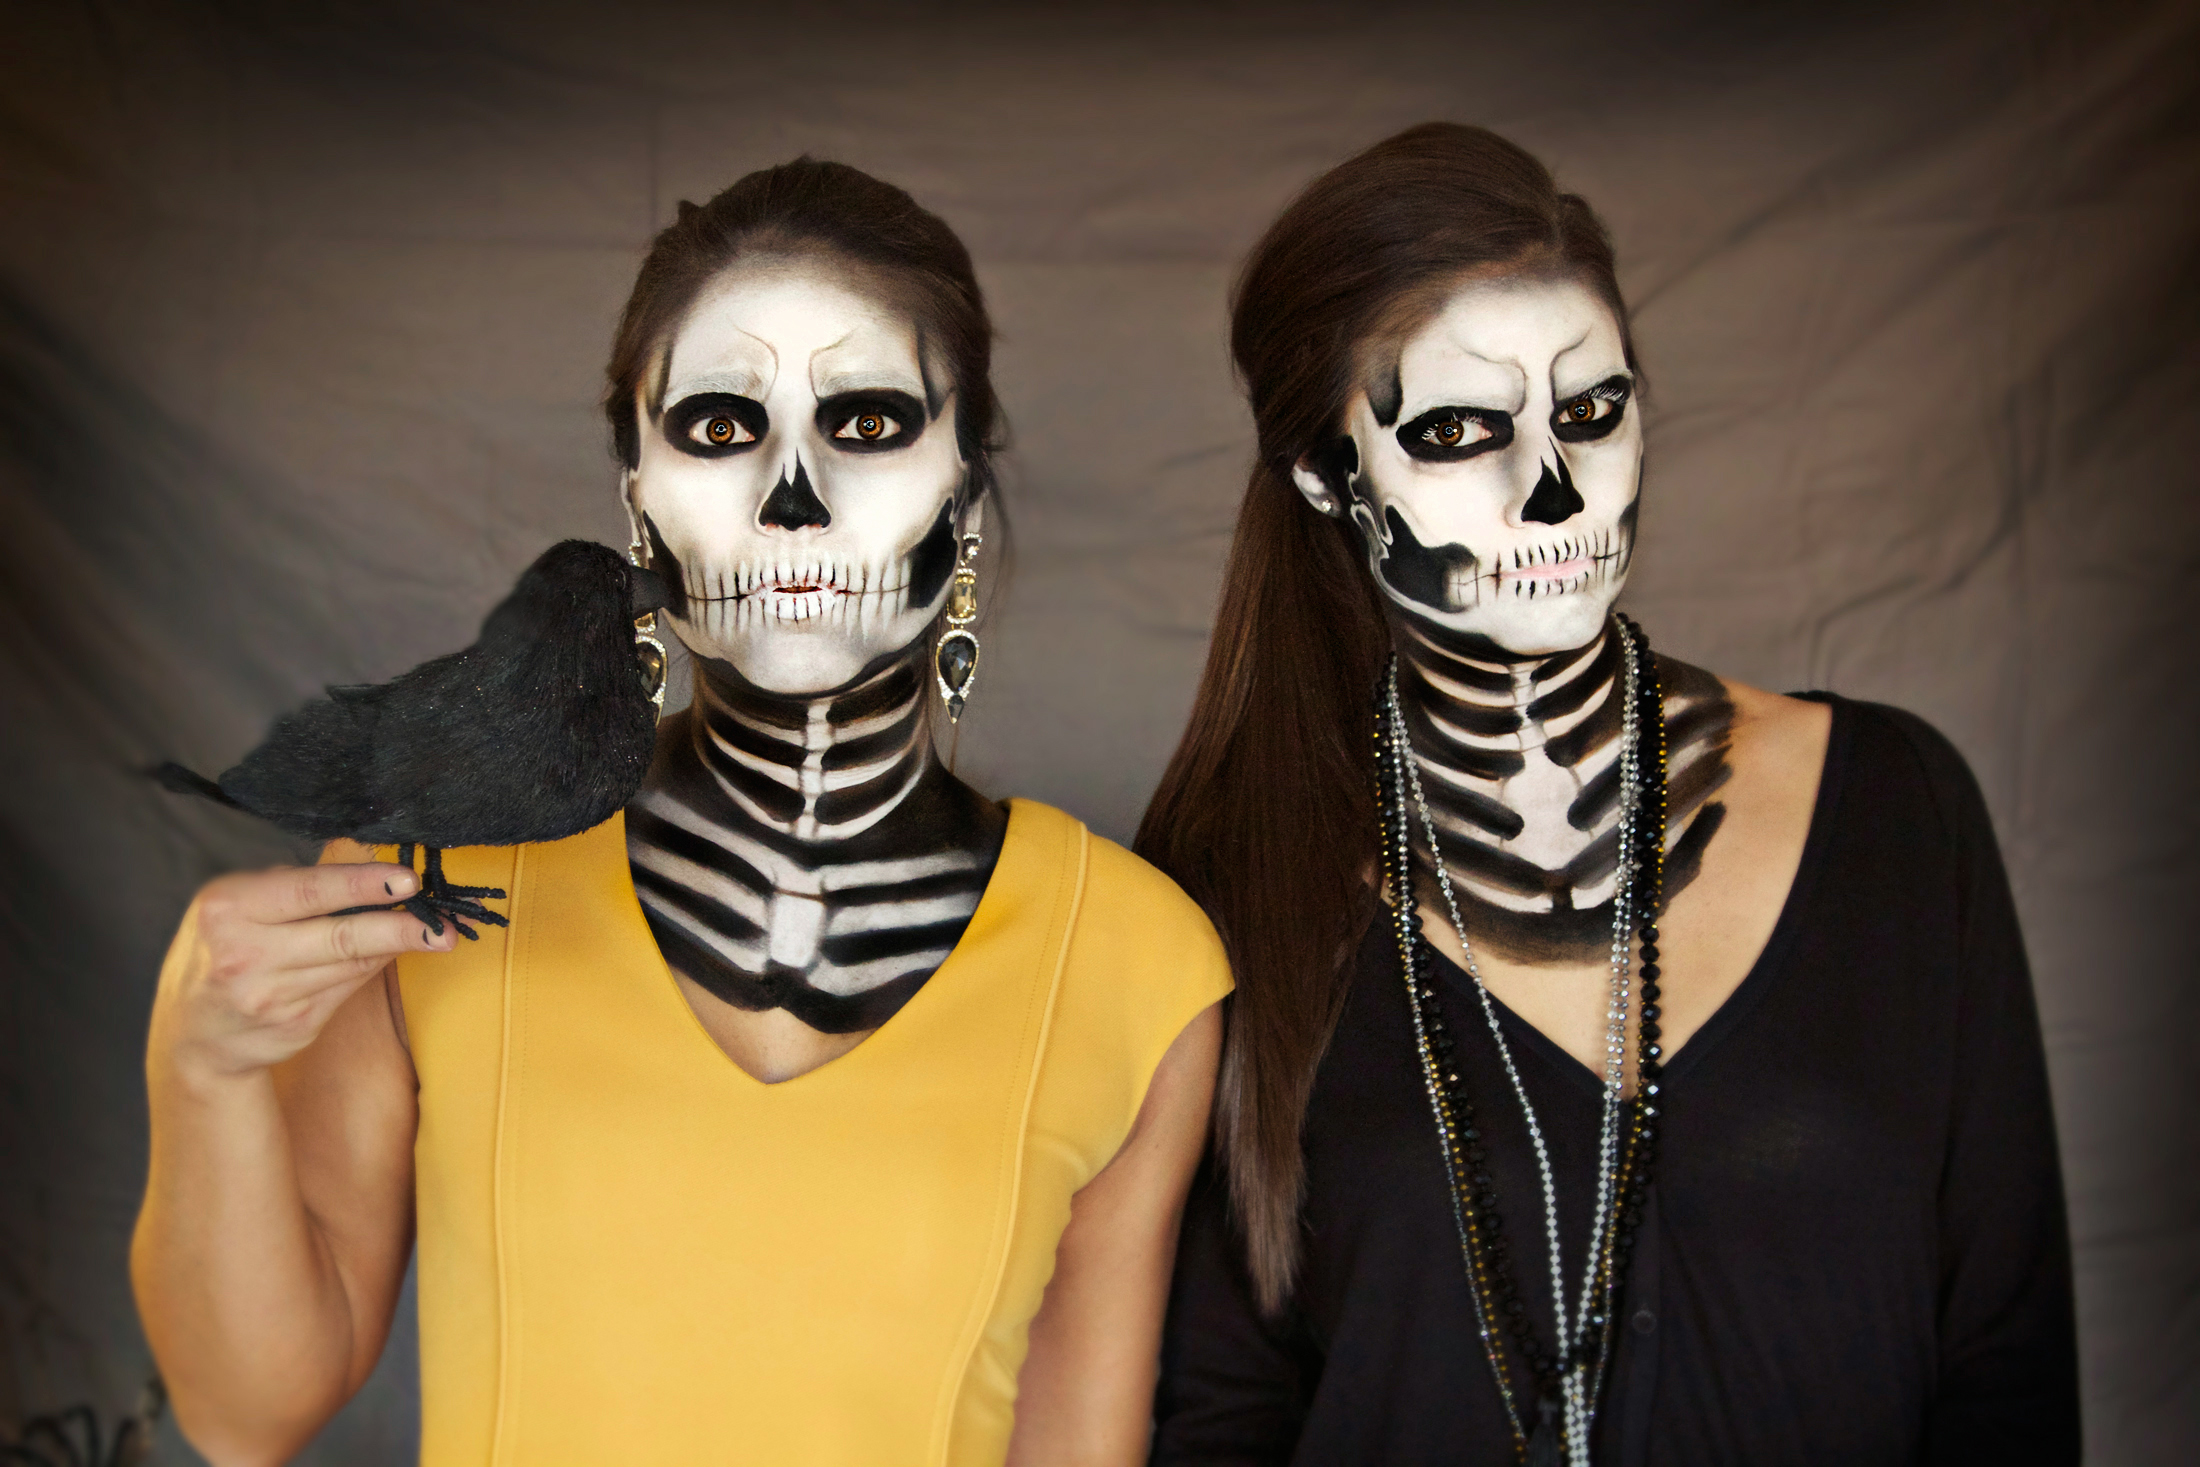 alex-faction-skeleton-makeup-halloween-awesome